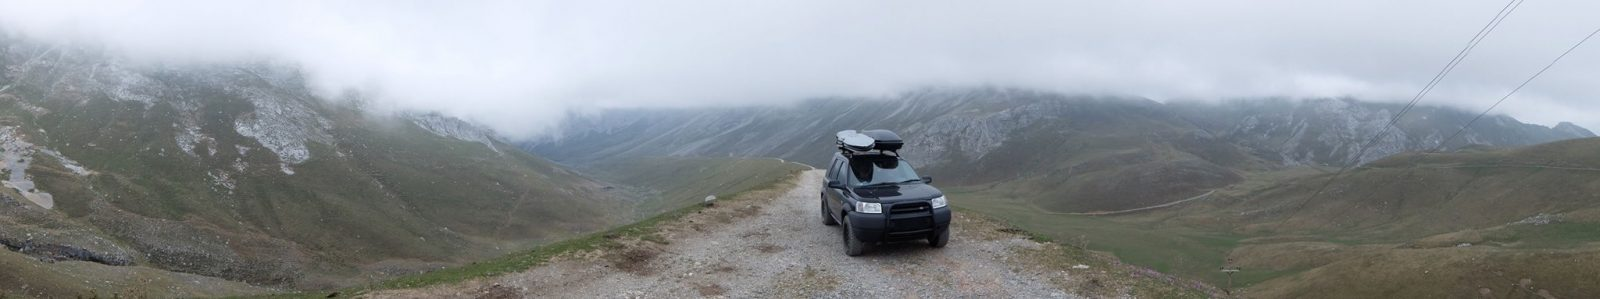 Land Rover Freelander on the Ruta del Cares